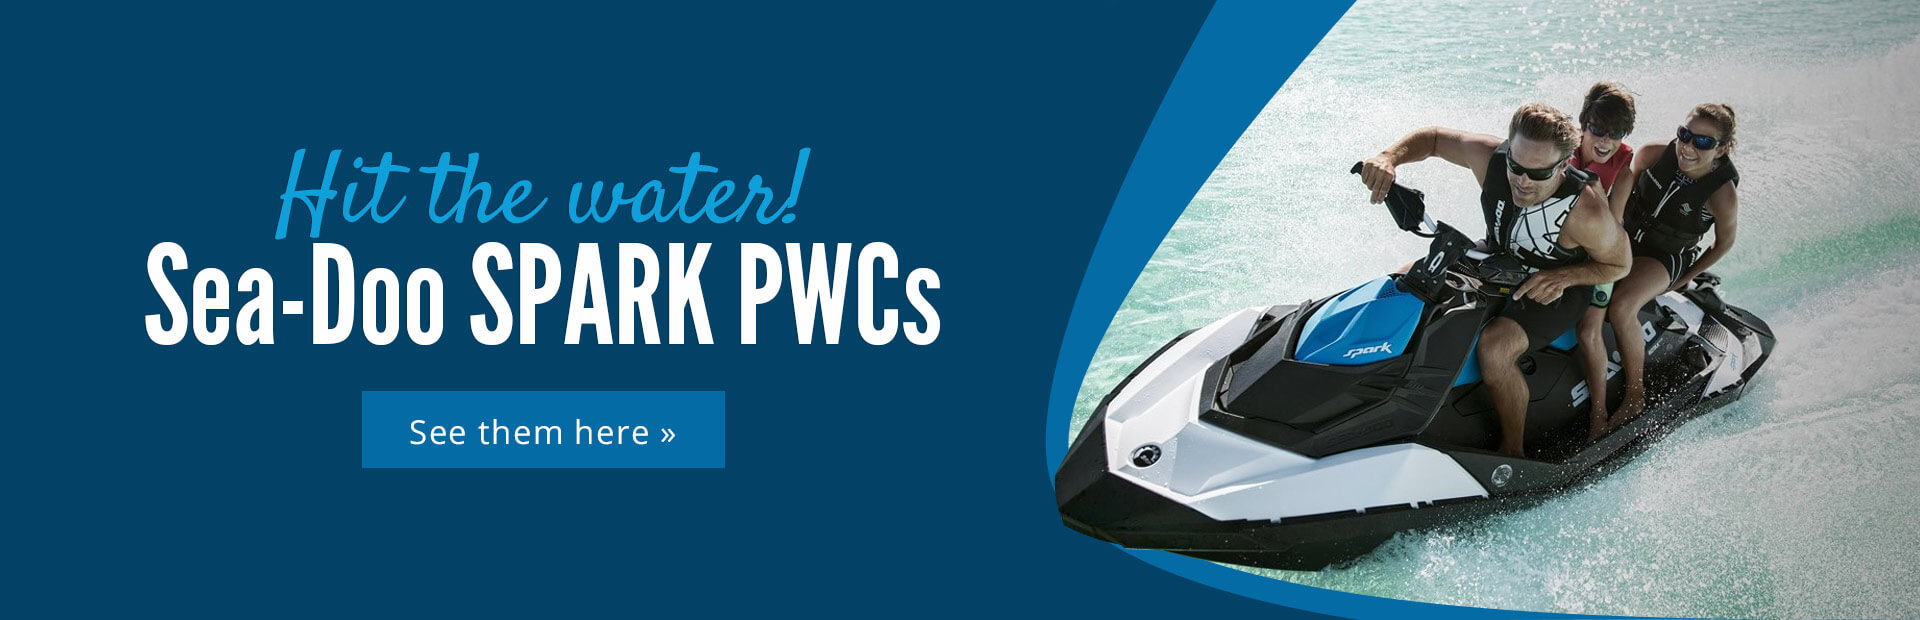 hight resolution of sea doo spark pwcs click here to view the models